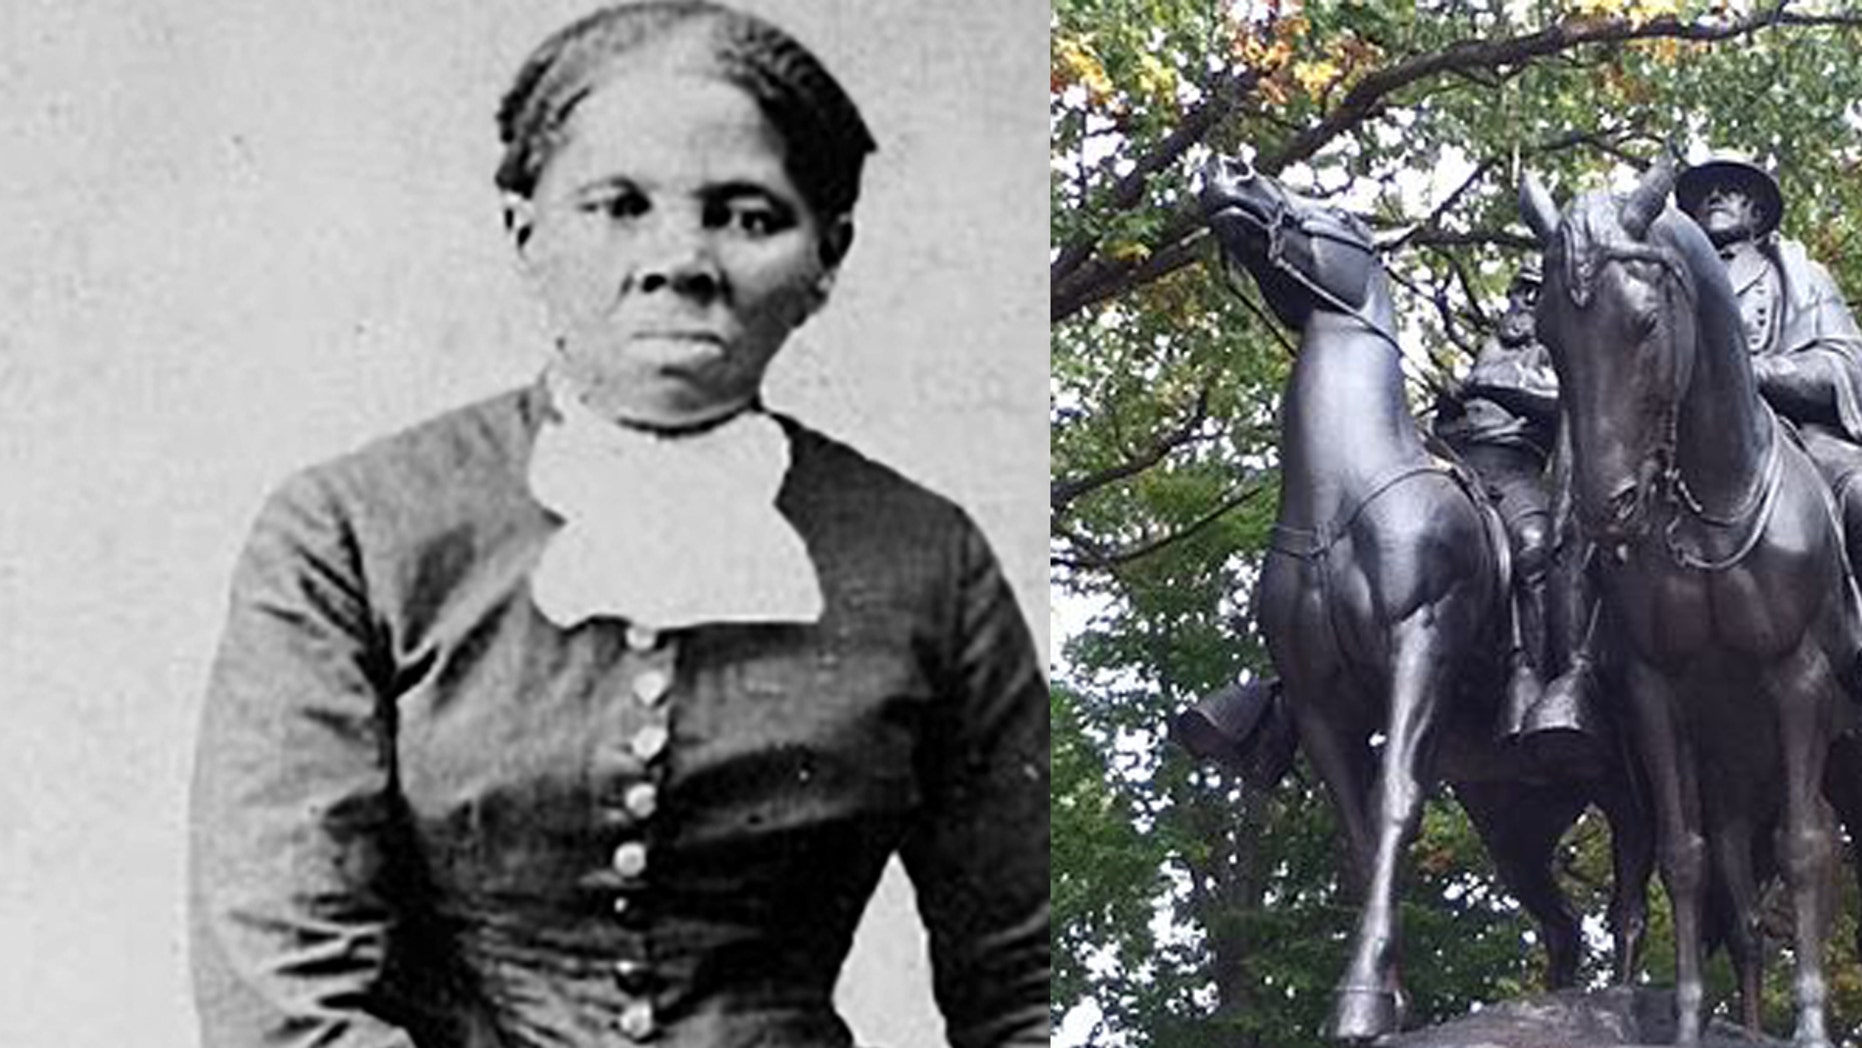 Space in a Baltimore park was dedicated to abolitionist Harriet Tubman, a left, after a statue of Confederate Gens. Robert E. Lee and Stonewall Jackson, at right, was taken down last summer.